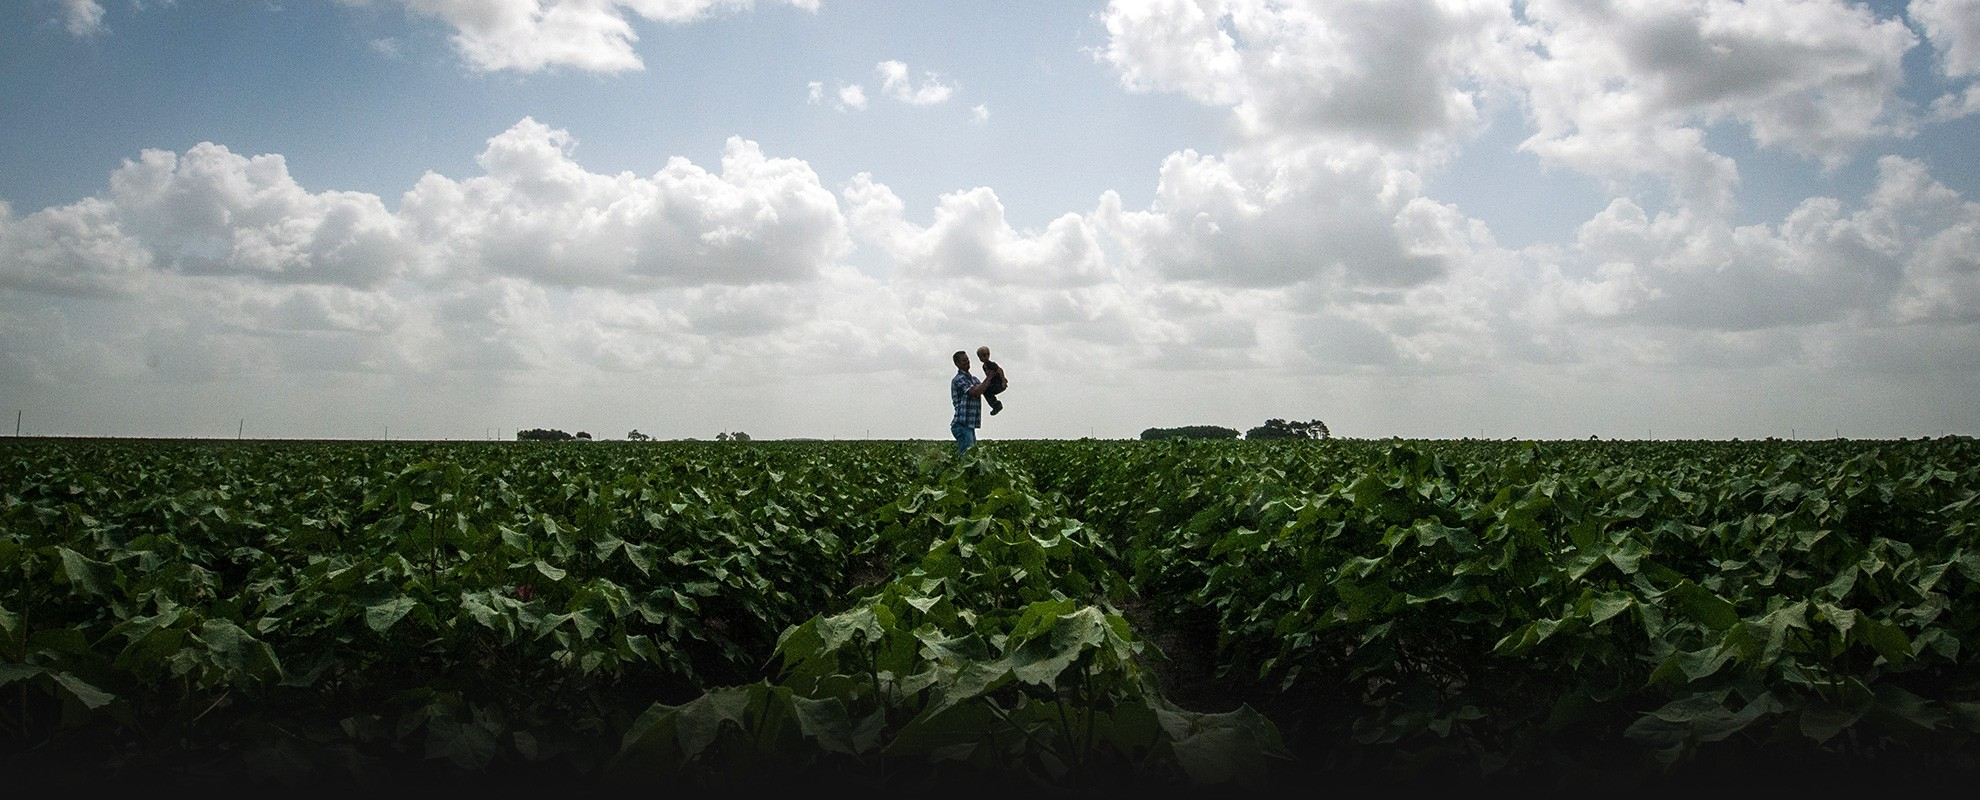 A father and son in a cotton field in El Campo, Texas. Chlorpyrifos is widely used on cotton. The EPA has acknowledged its legal obligation to protect children from pesticide drift.